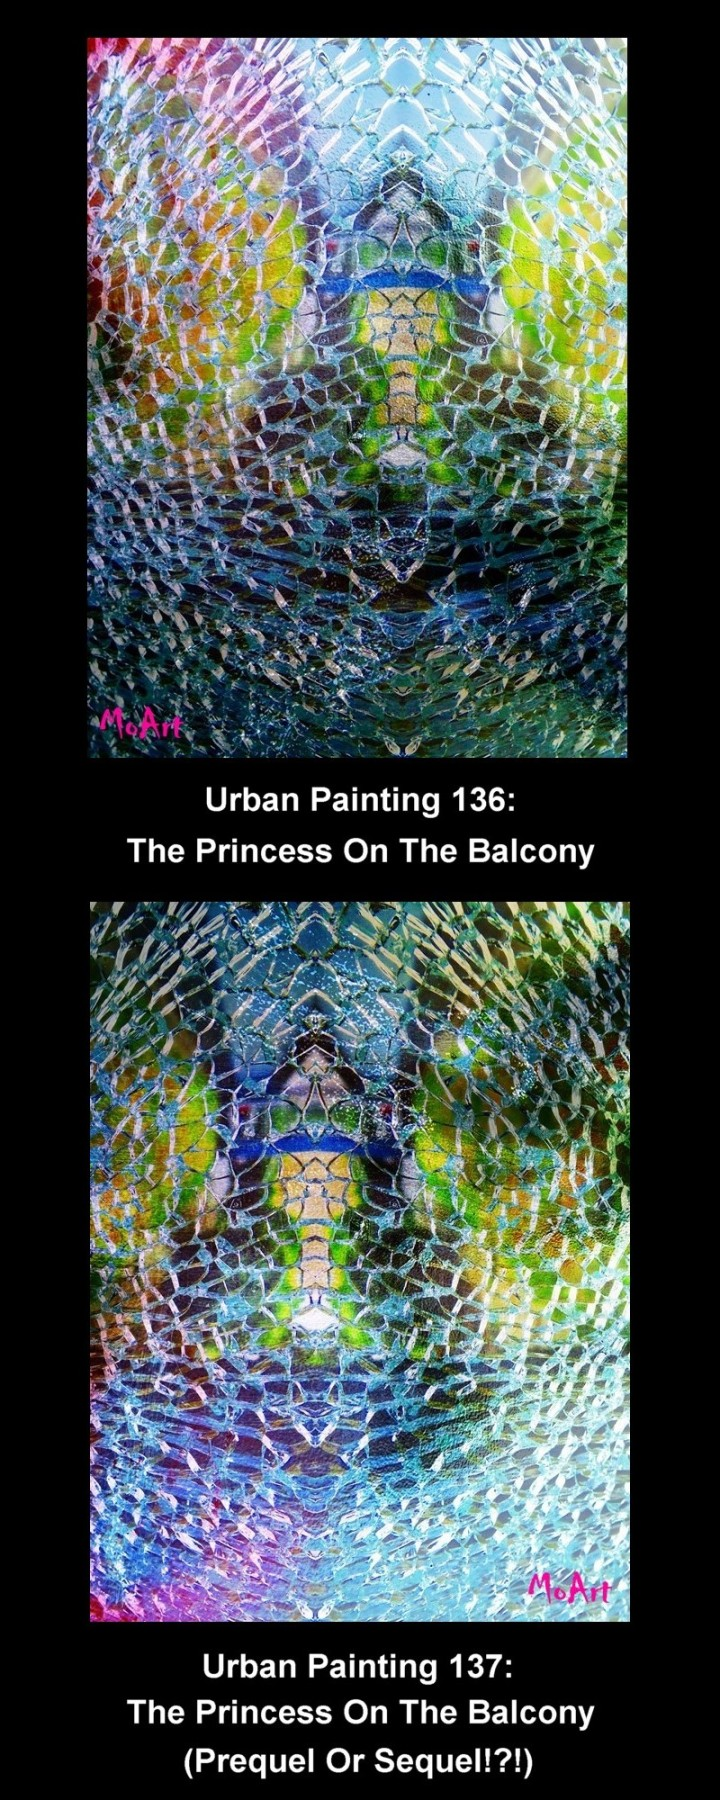 MoArt The Princess On The Balcony 1 and 2